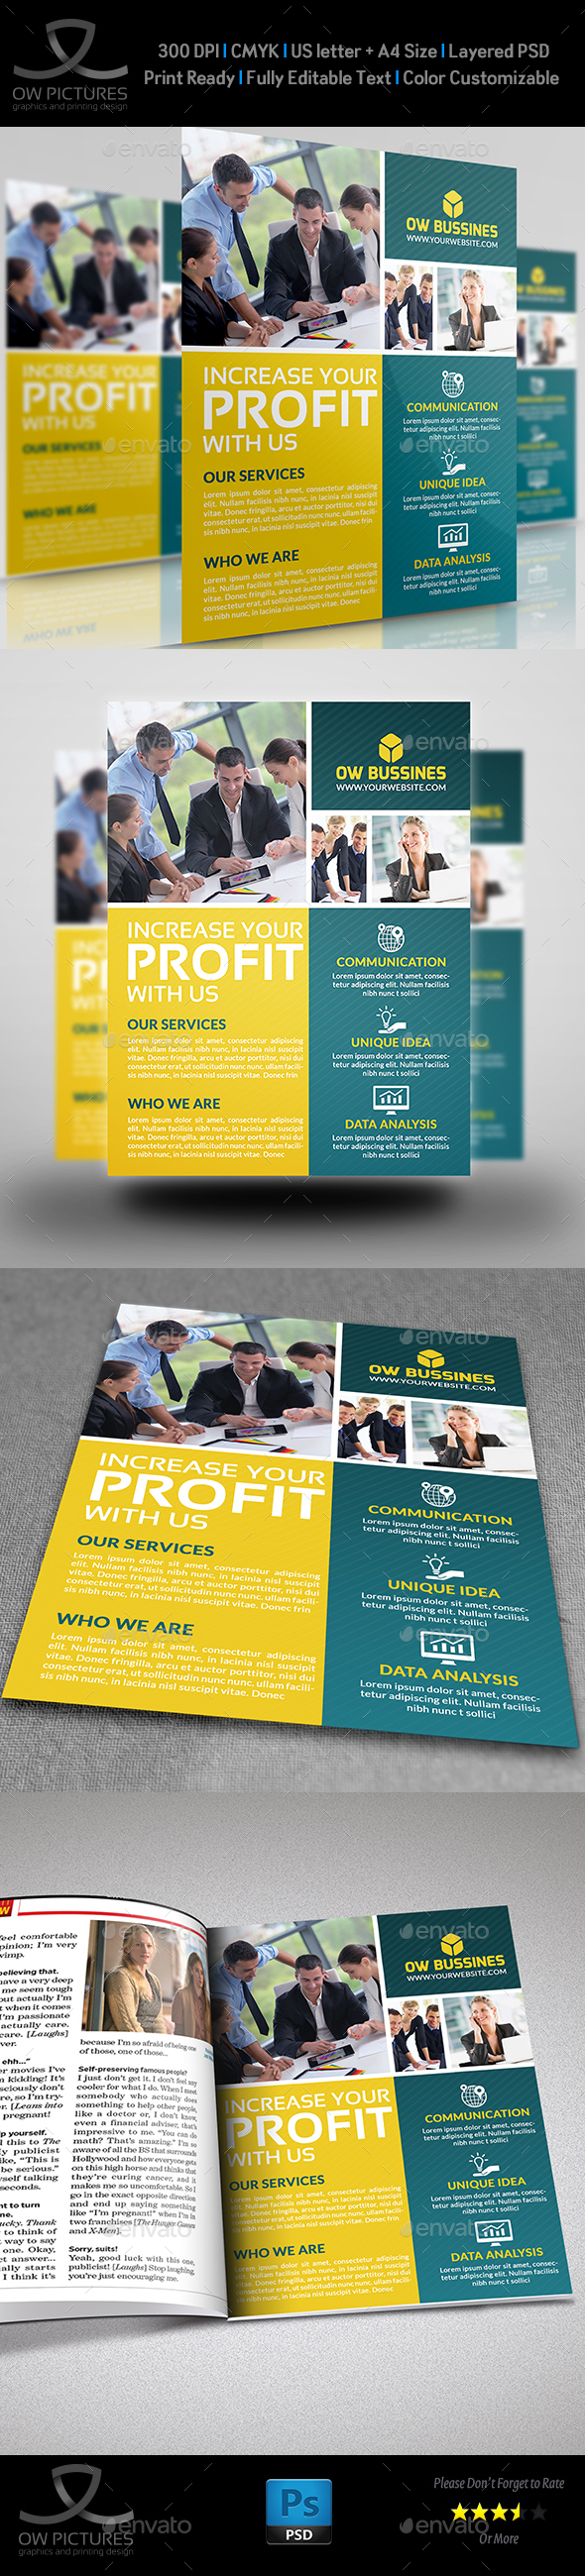 Corporate Business Flyer Vol.14 - Corporate Flyers